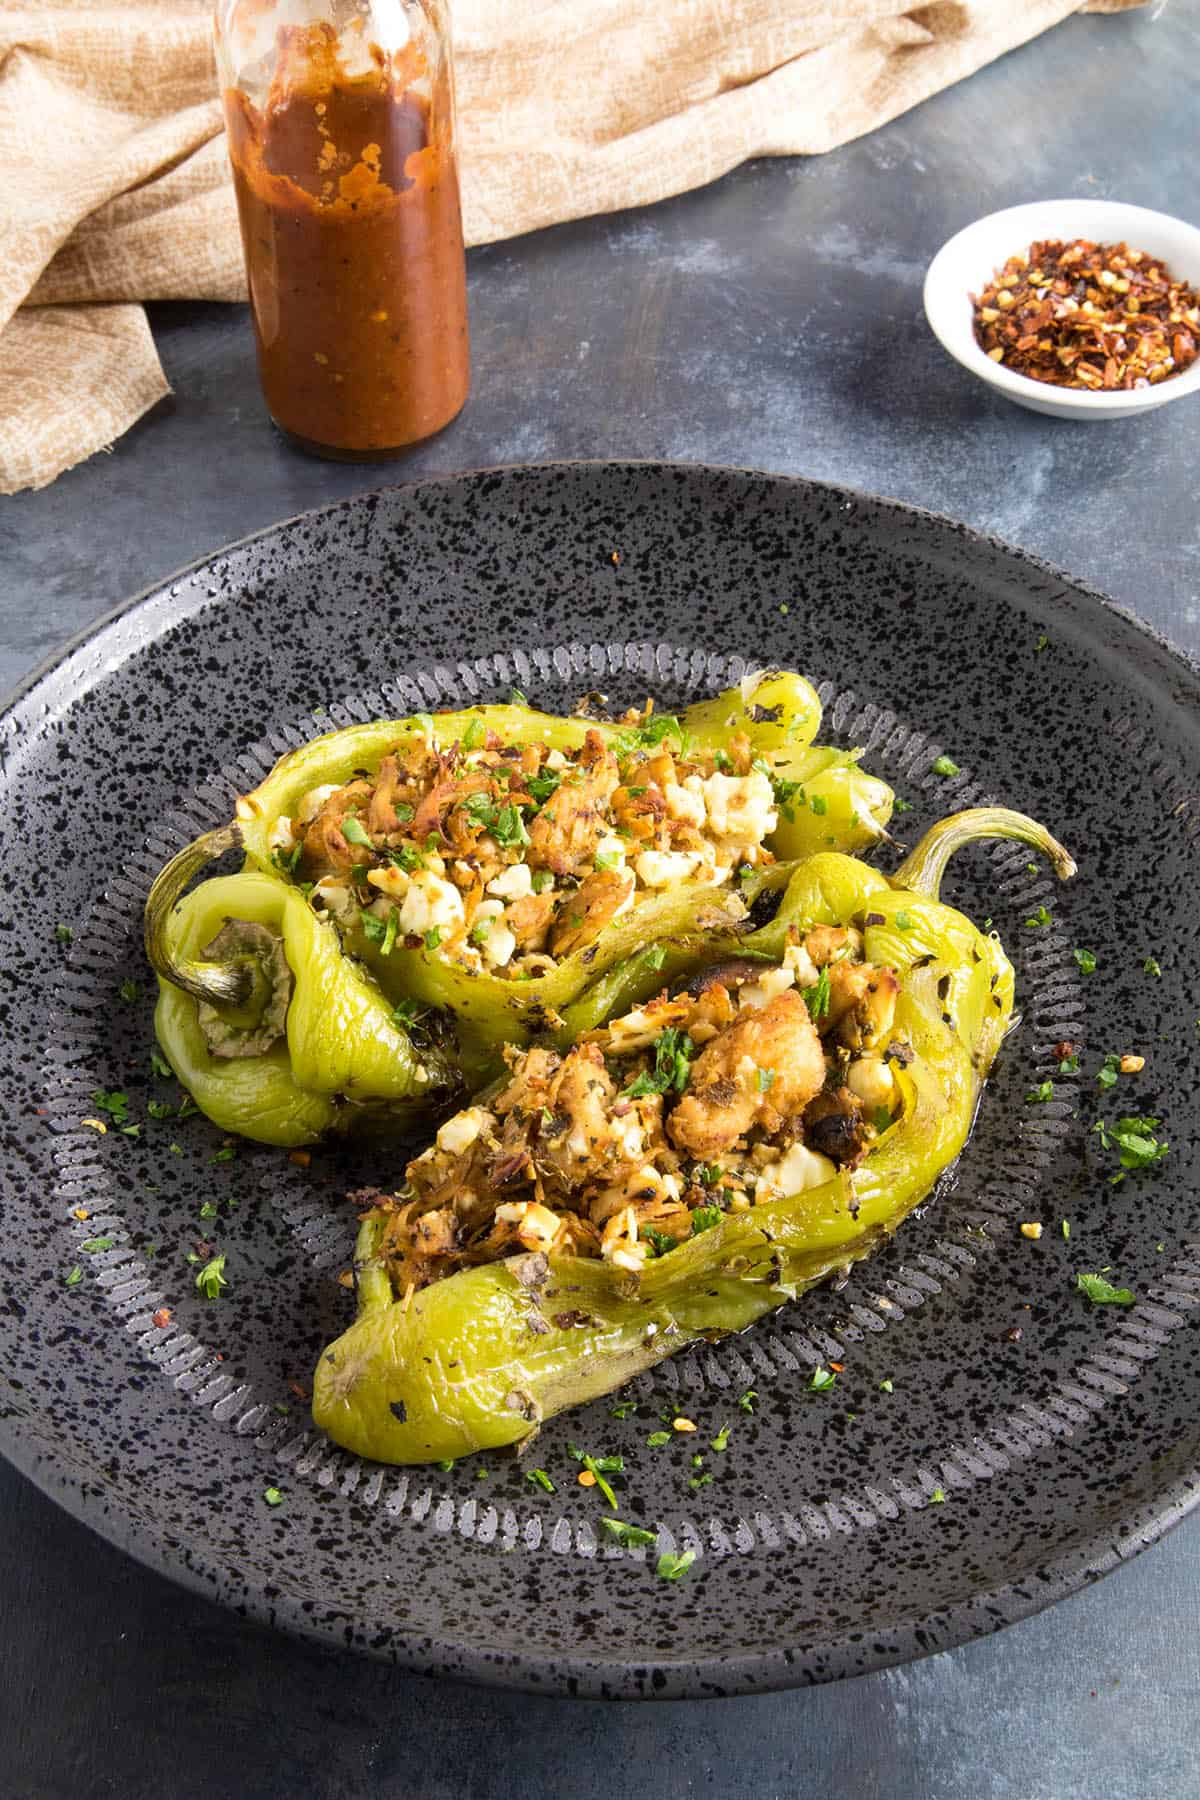 Chicken and Cheese Stuffed Anaheim Peppers - Served up on a plate with hot sauce on the side